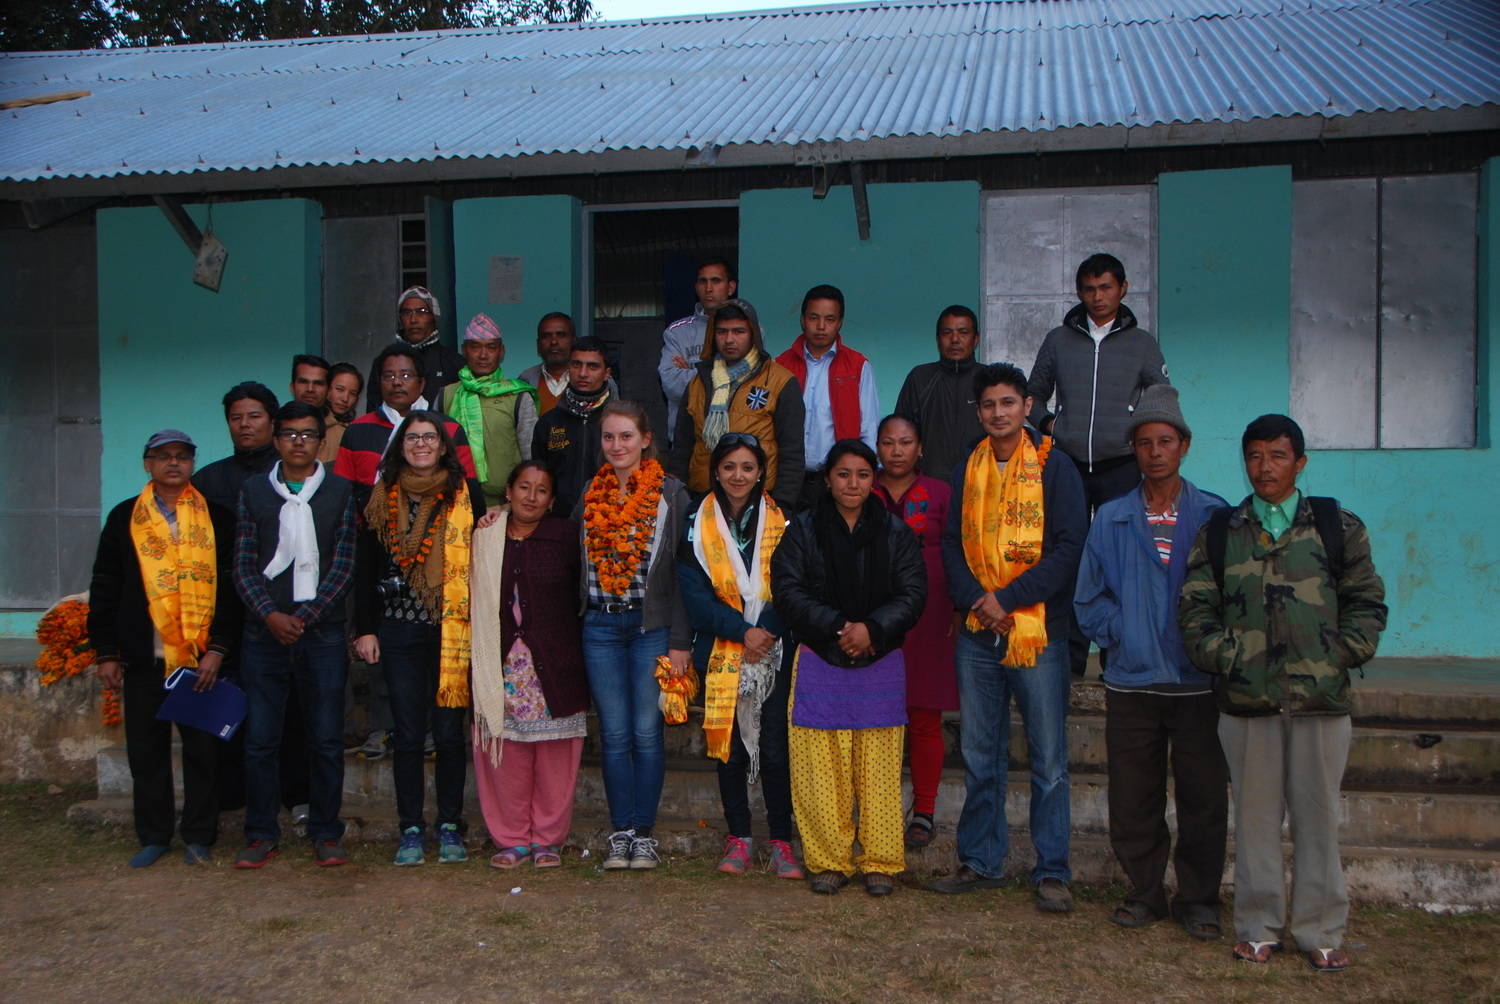 Our group with the Attarpur teachers and administration taken just before our evening departure.